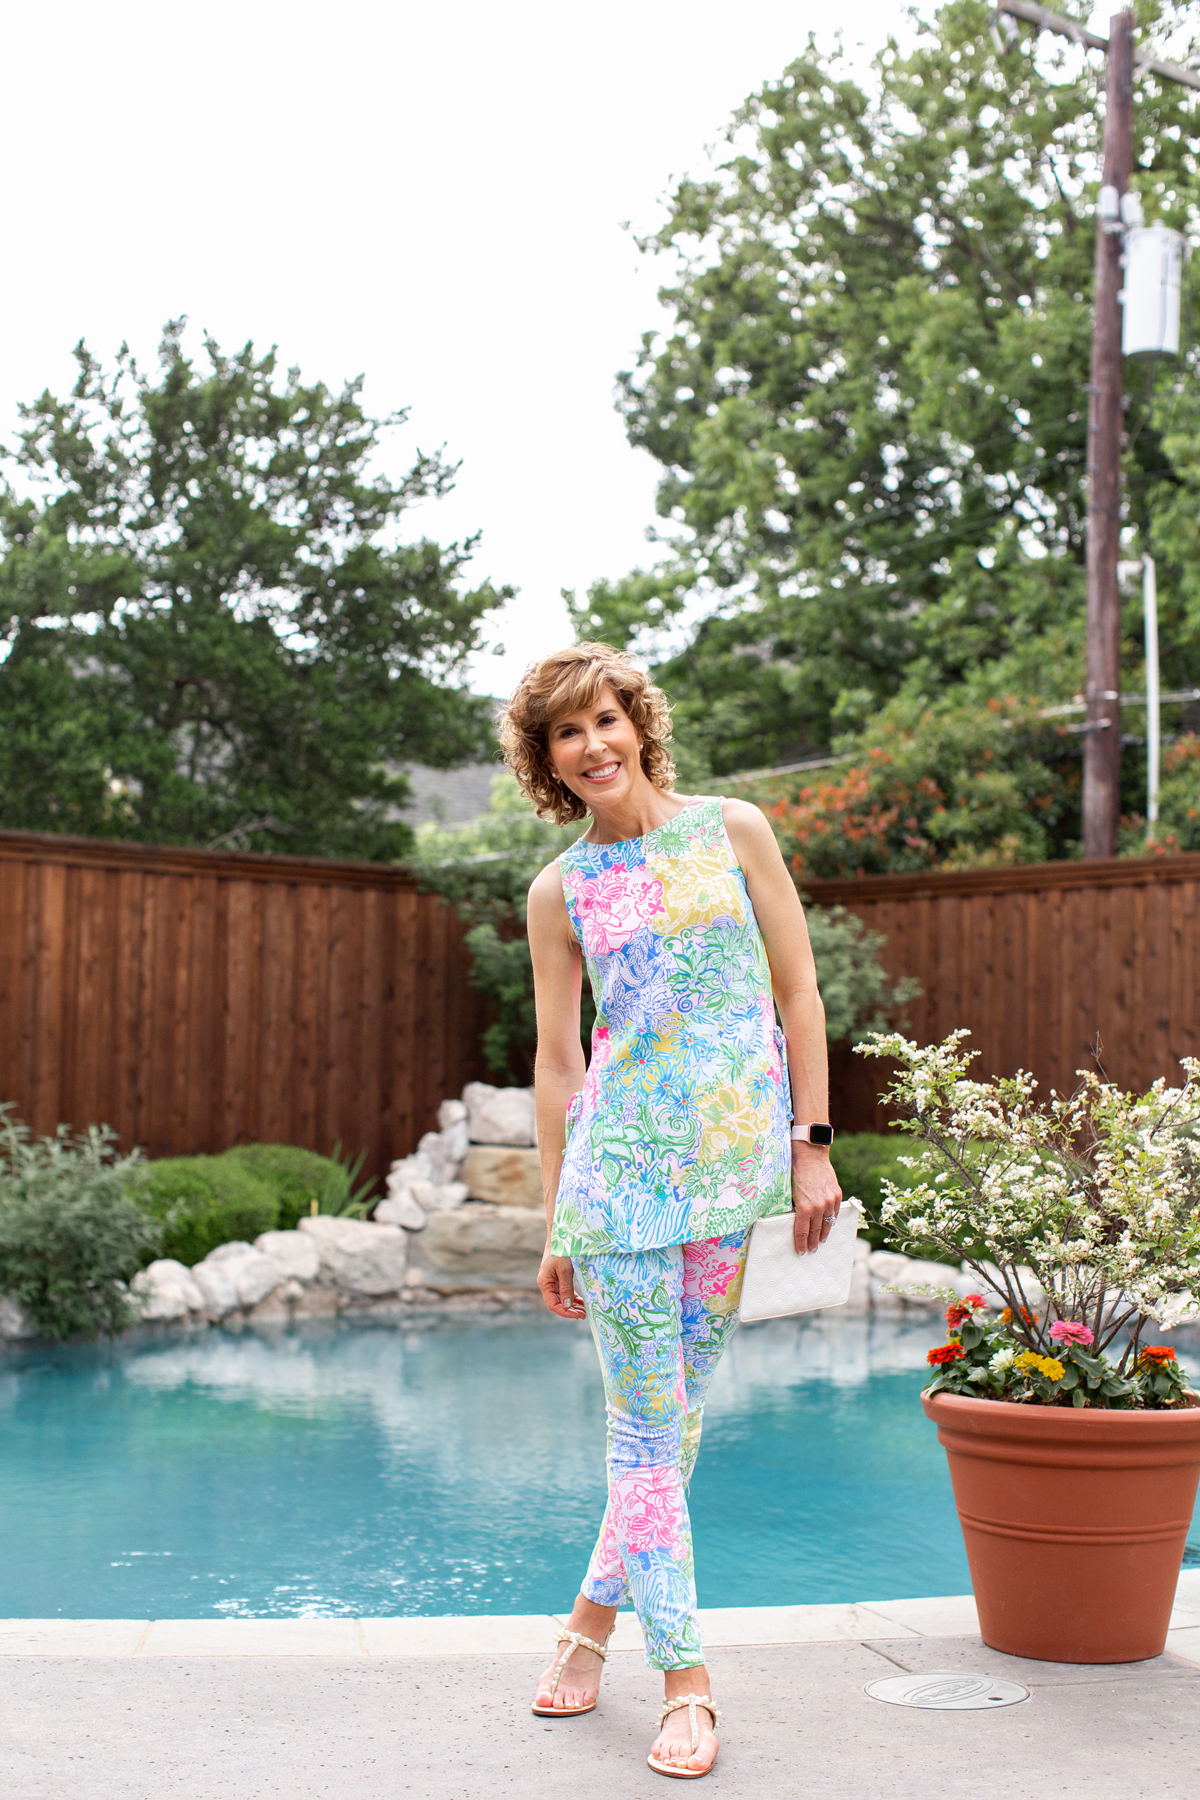 woman standing in front of a pool wearing lilly pulitzer outfit